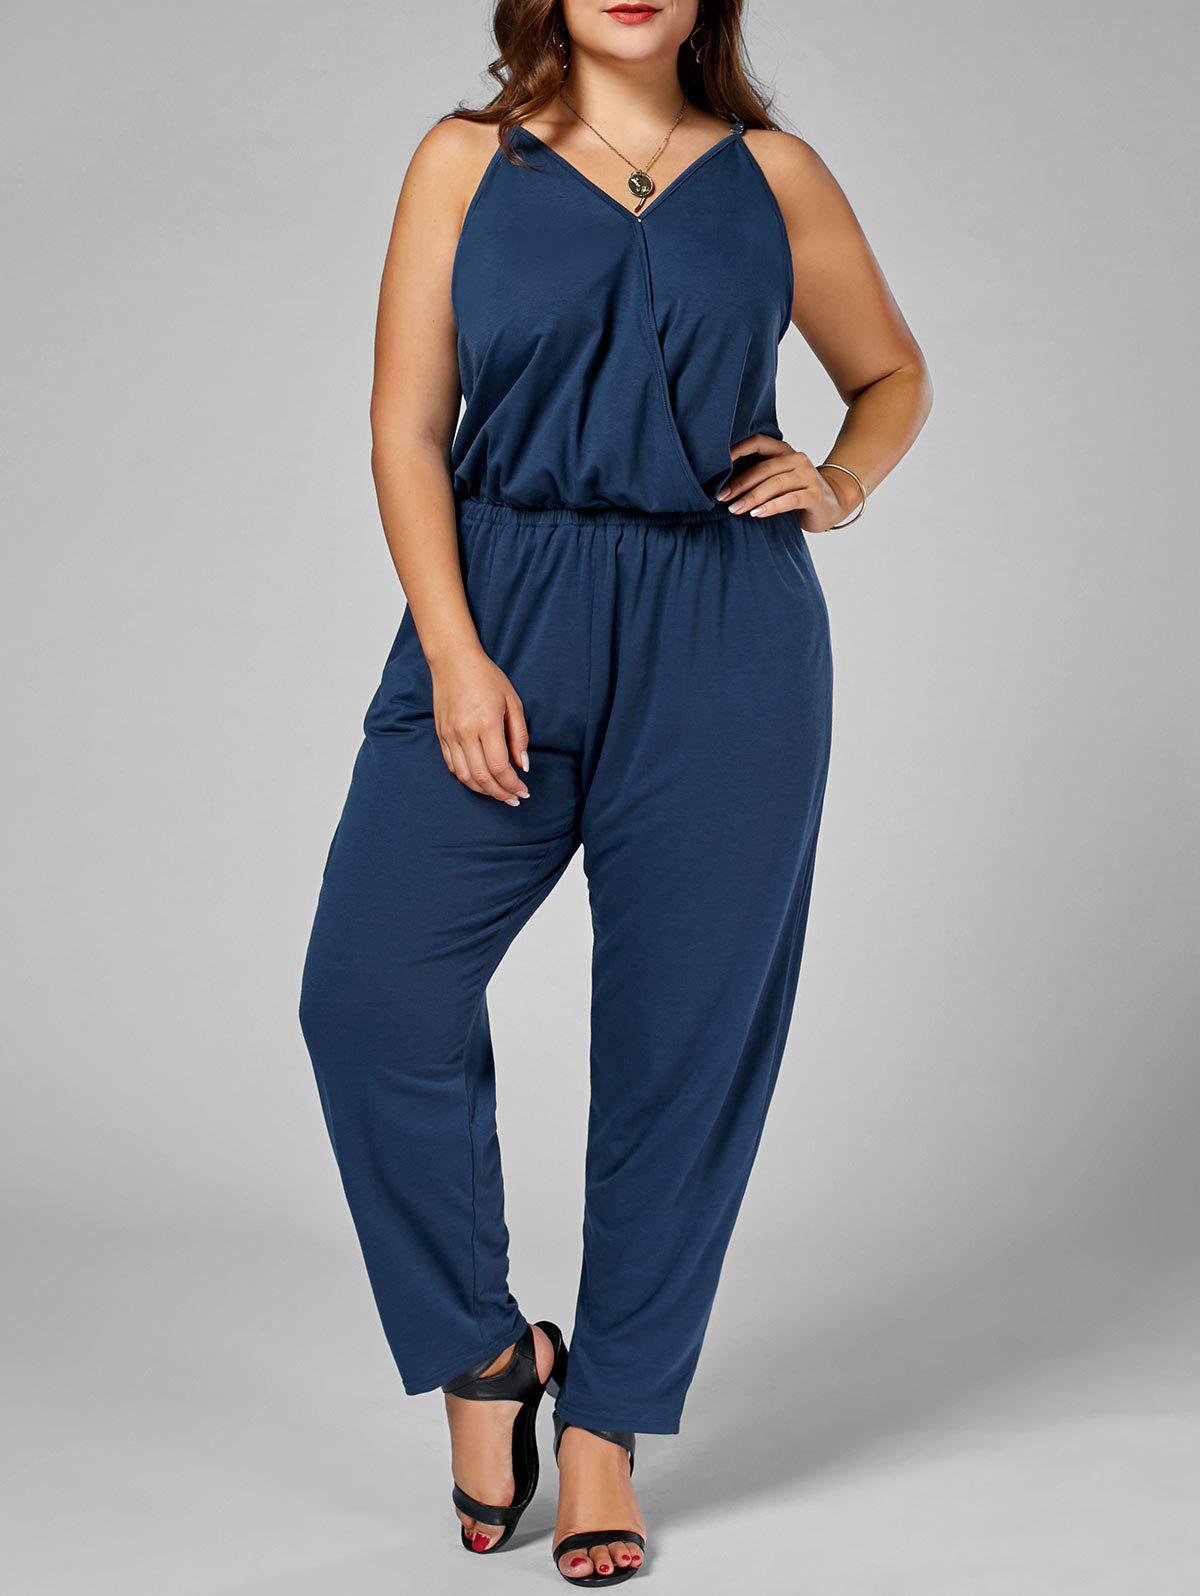 Plus Size Spaghetti Strap Jumpsuit - CADETBLUE 6XL